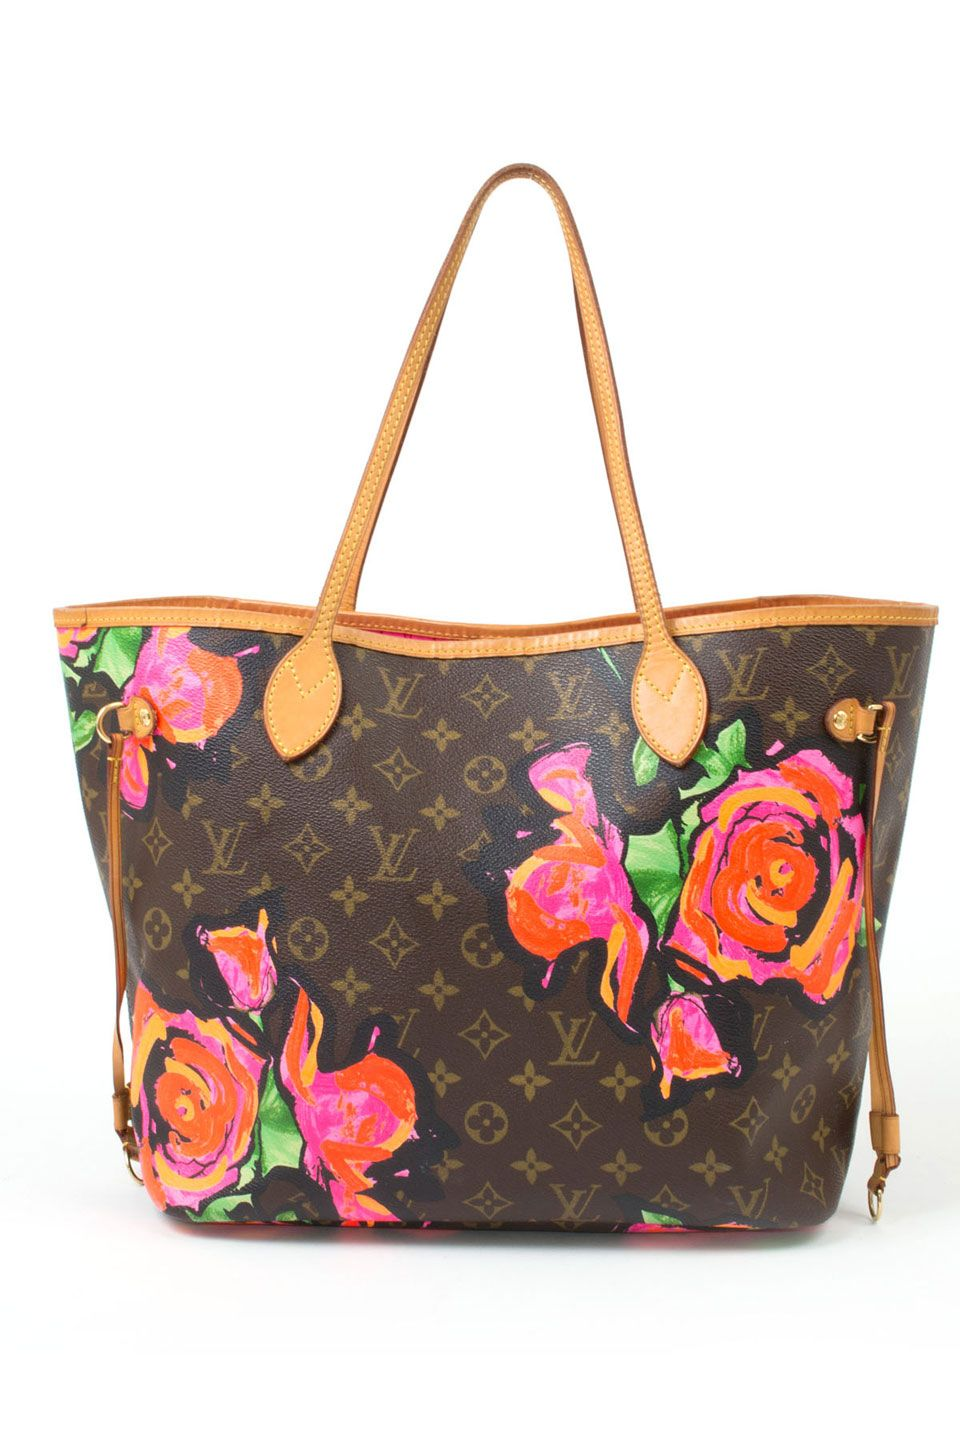 6583857124fa Vintage LV  Neverfull Roses Stephen Sprouse Gm In Monogram. My purse ...